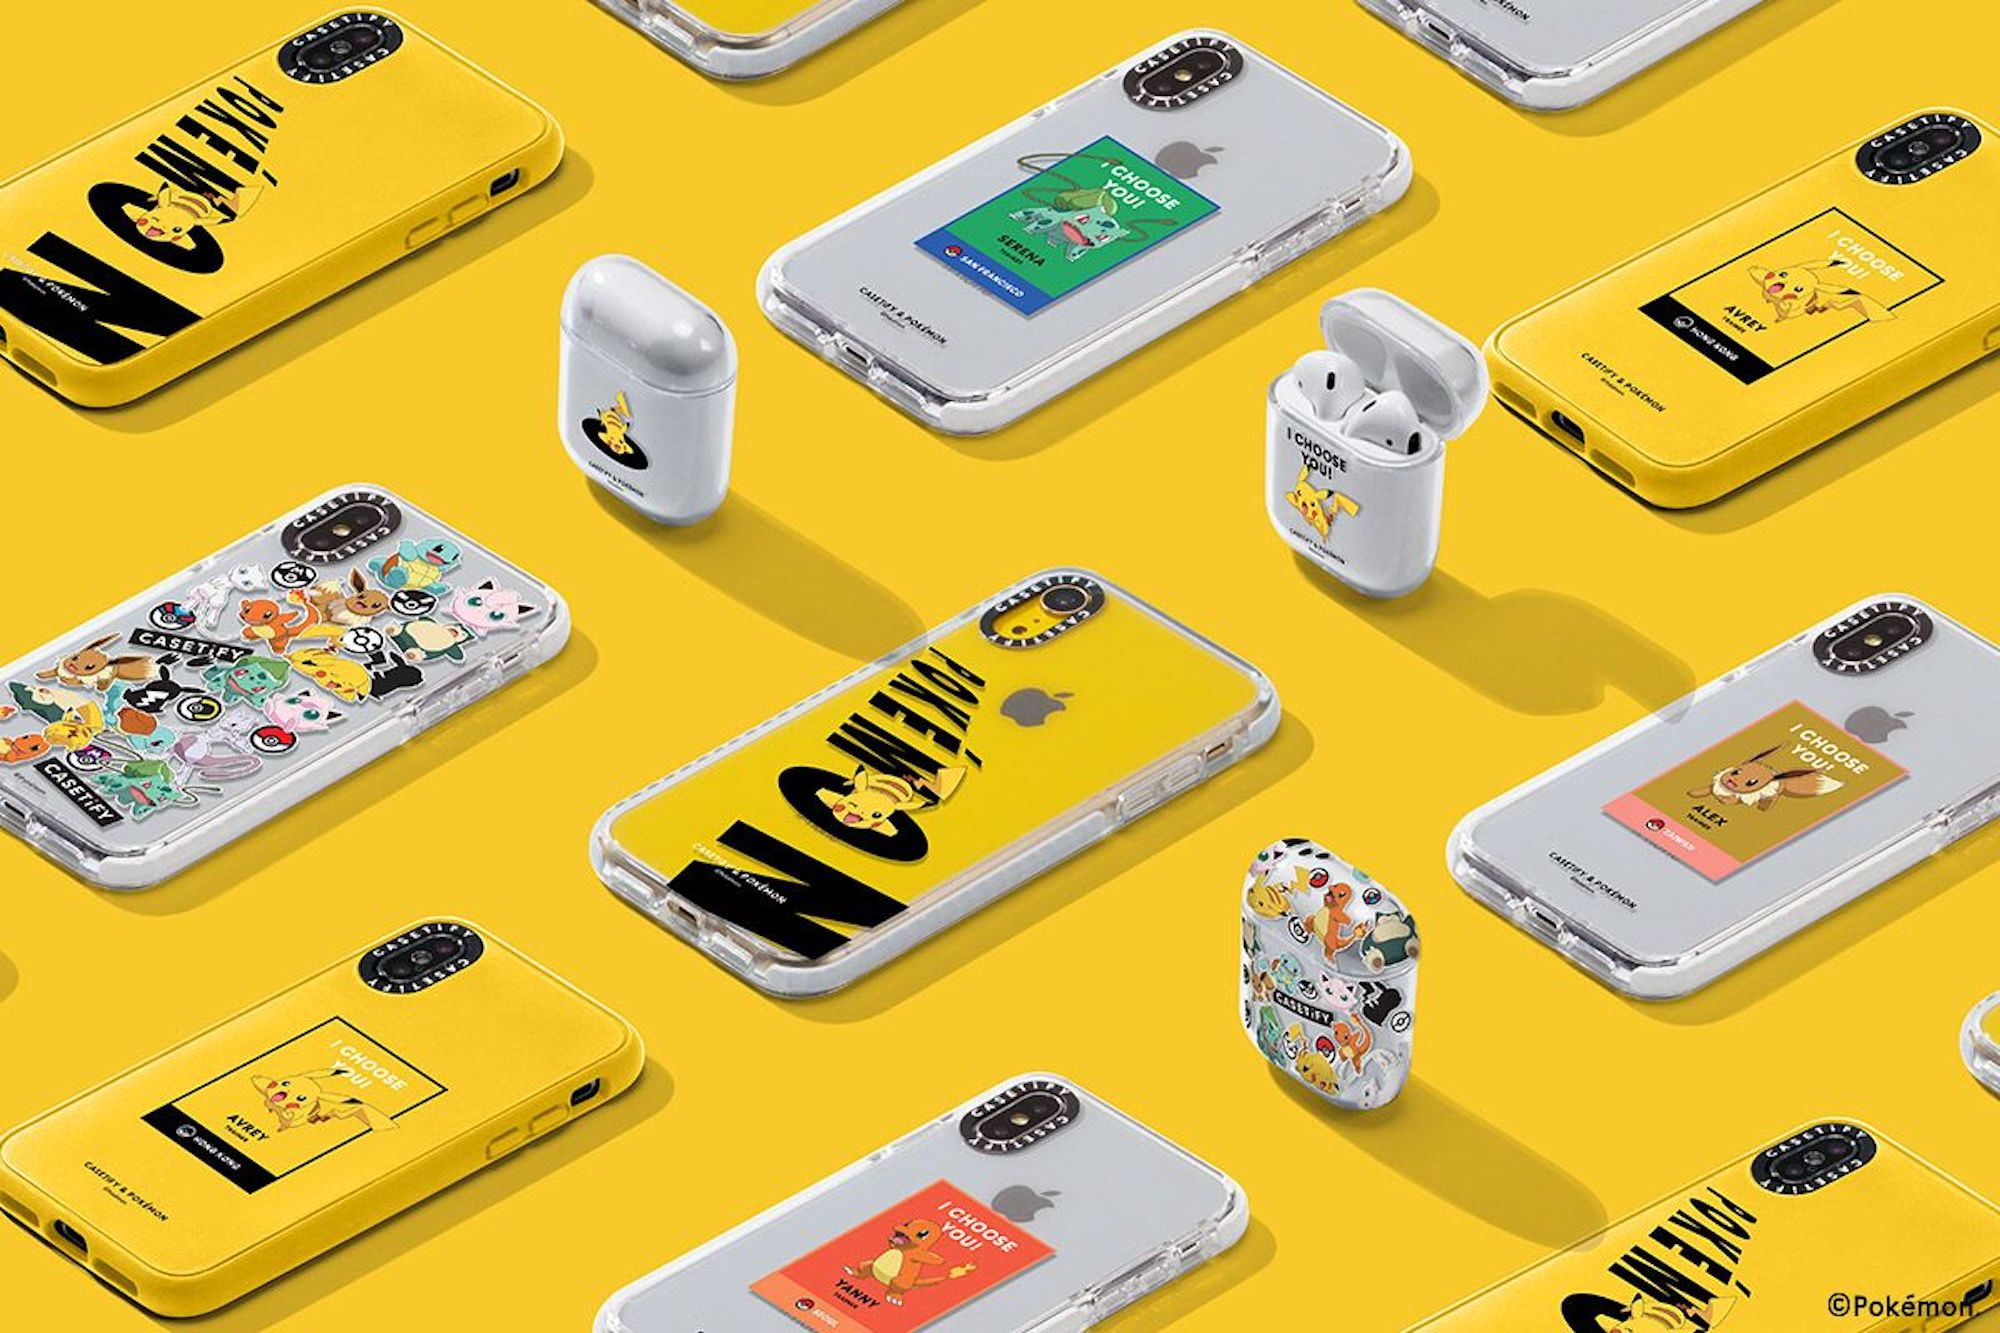 The CASETiFY & Pokémon Day and Night collection